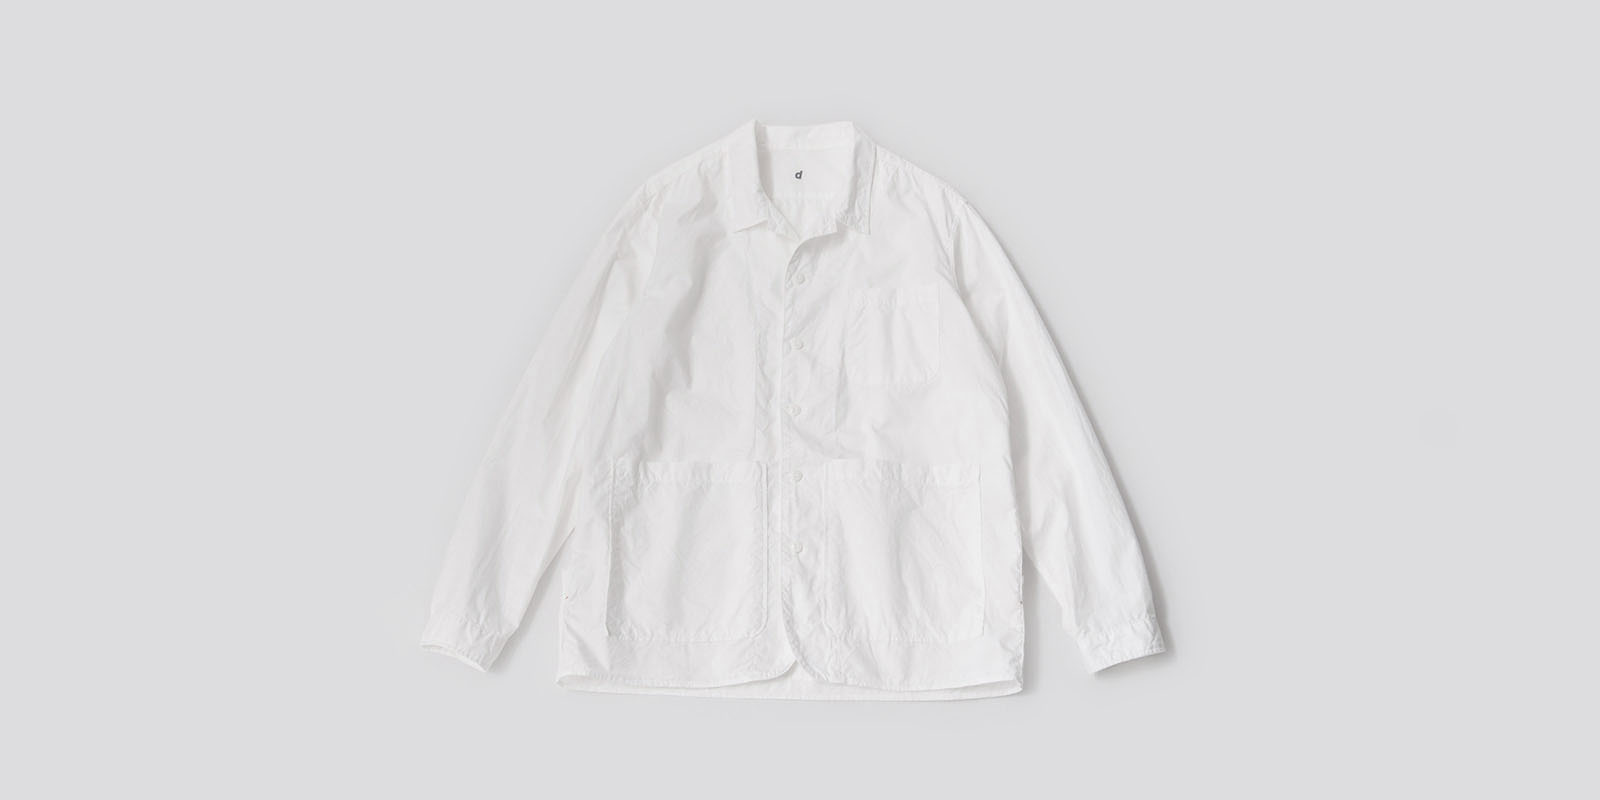 d 202 BACK POCKET SHIRT・ホワイト・M